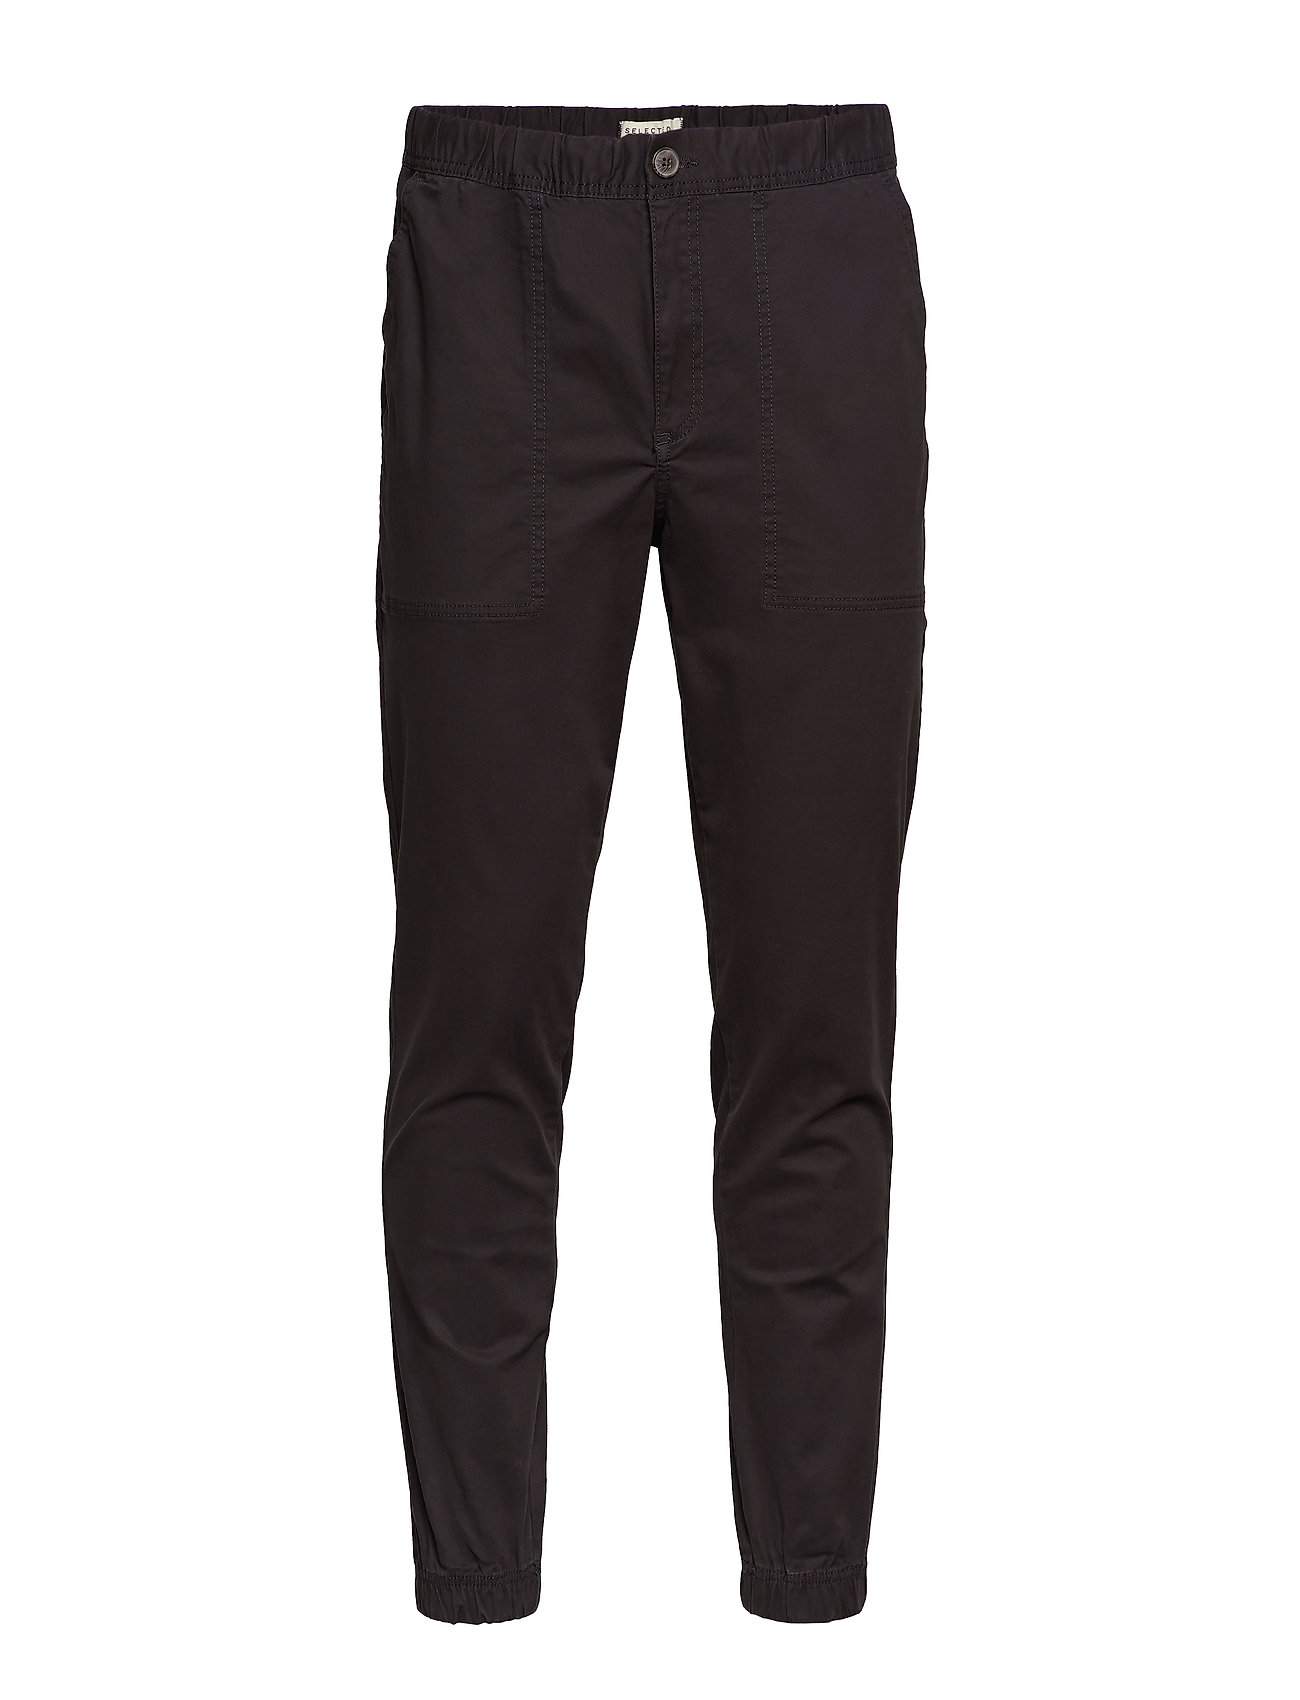 Selected Homme SLHSLIMTAPERED-MATEO PANTS W - BLACK